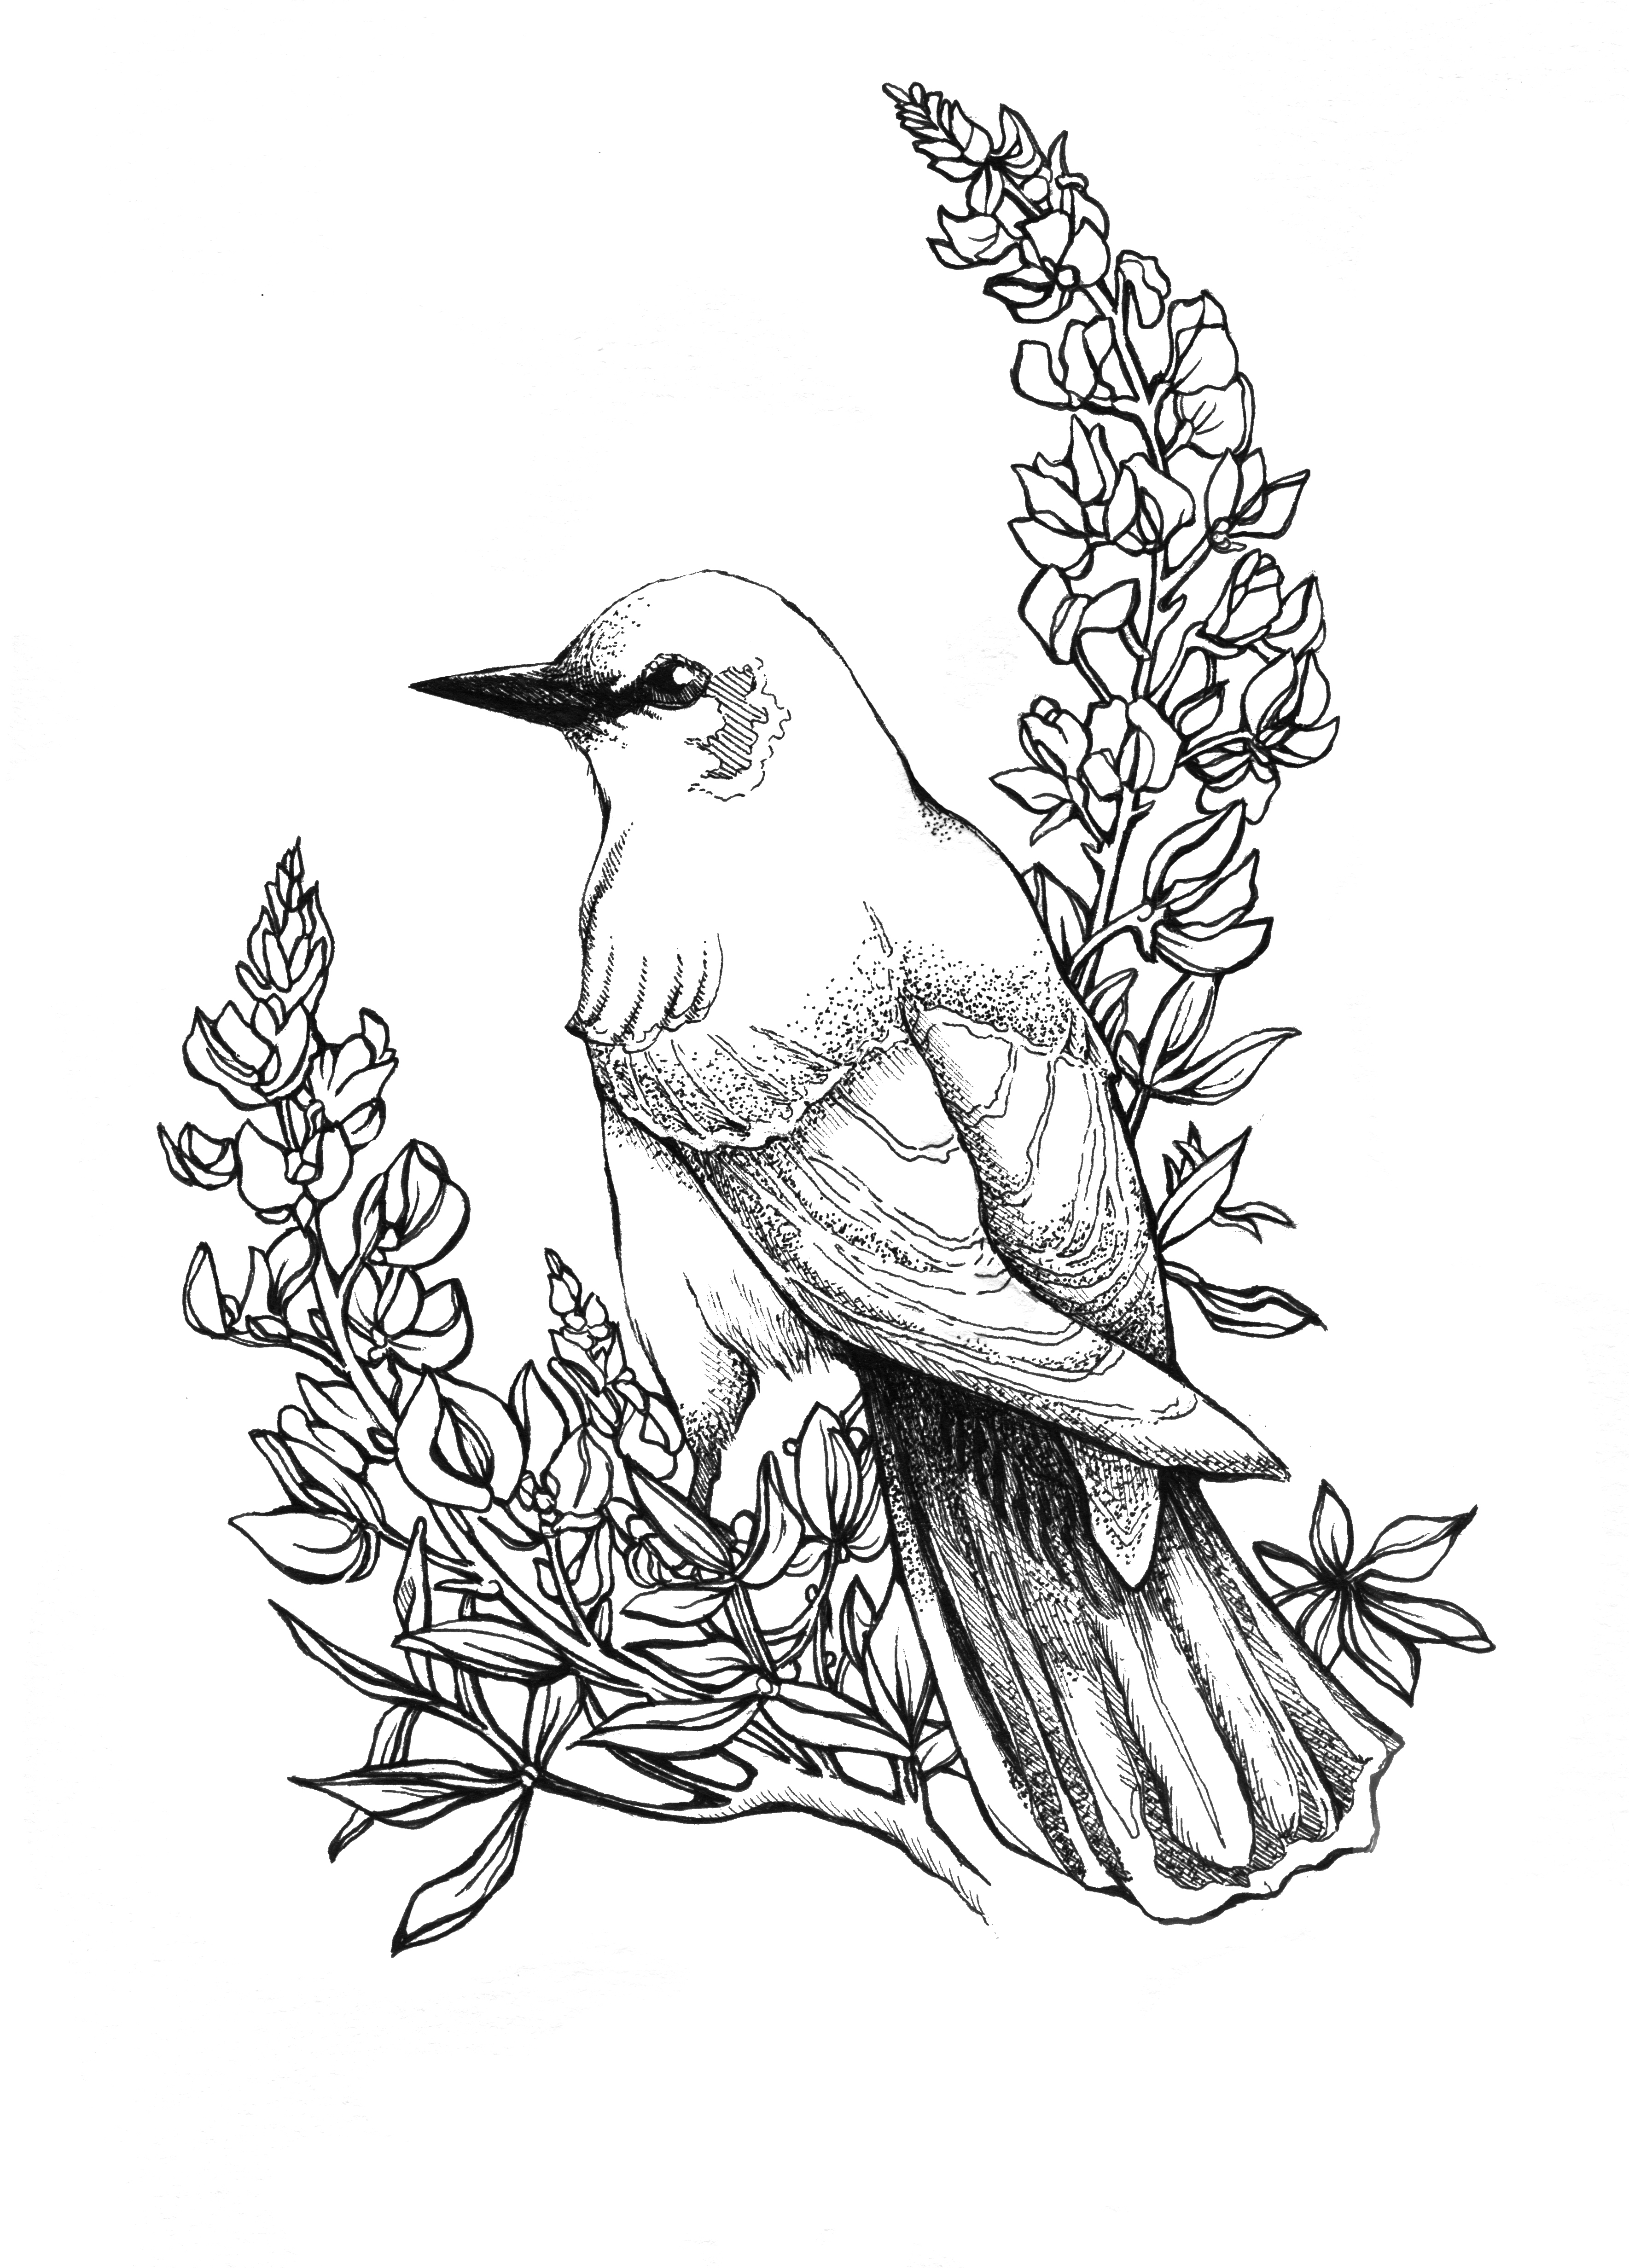 Birds And Flowers Drawing At GetDrawings.com | Free For Personal Use Birds And Flowers Drawing ...